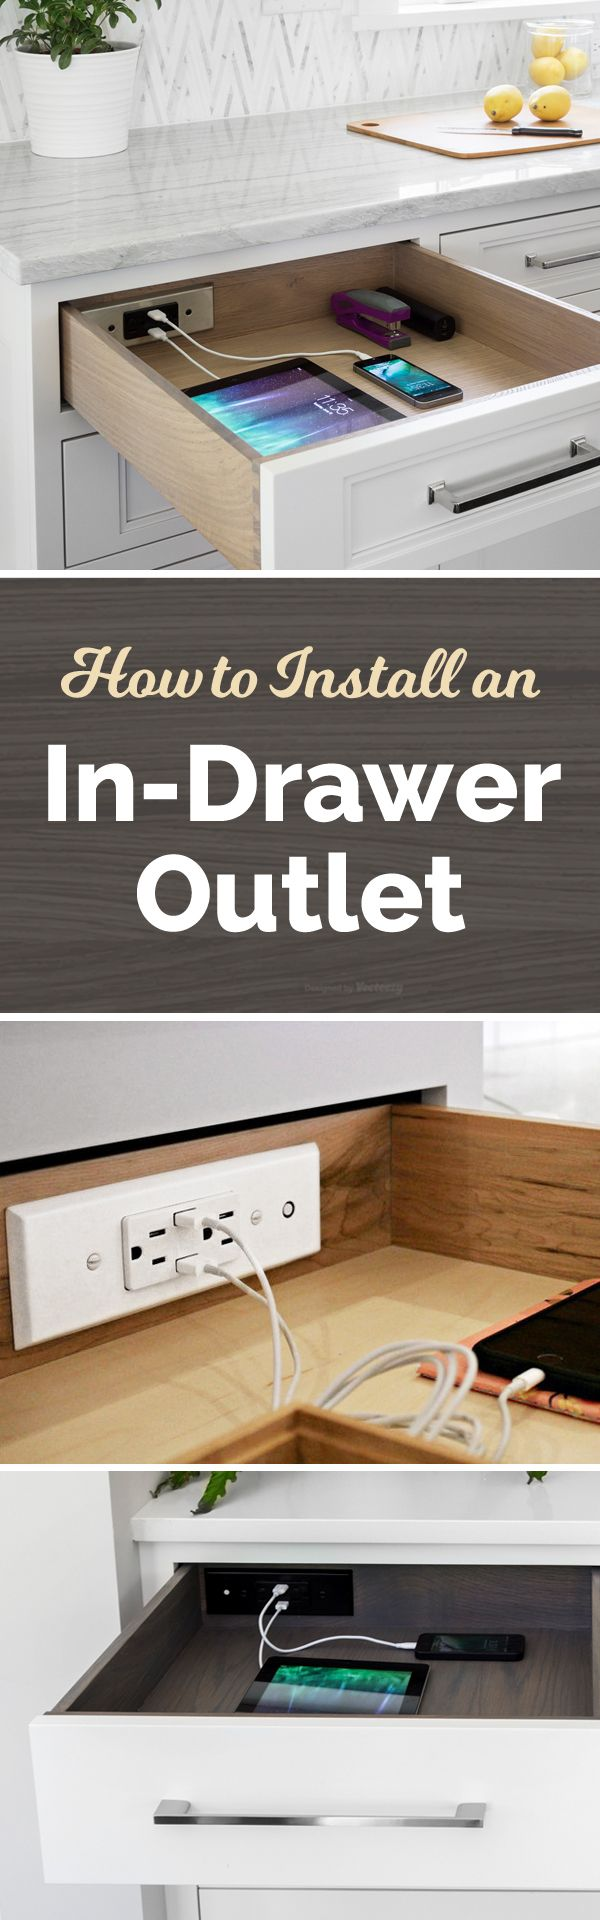 All The Information You Need To Install An ETL Listed In Drawer Outlet By